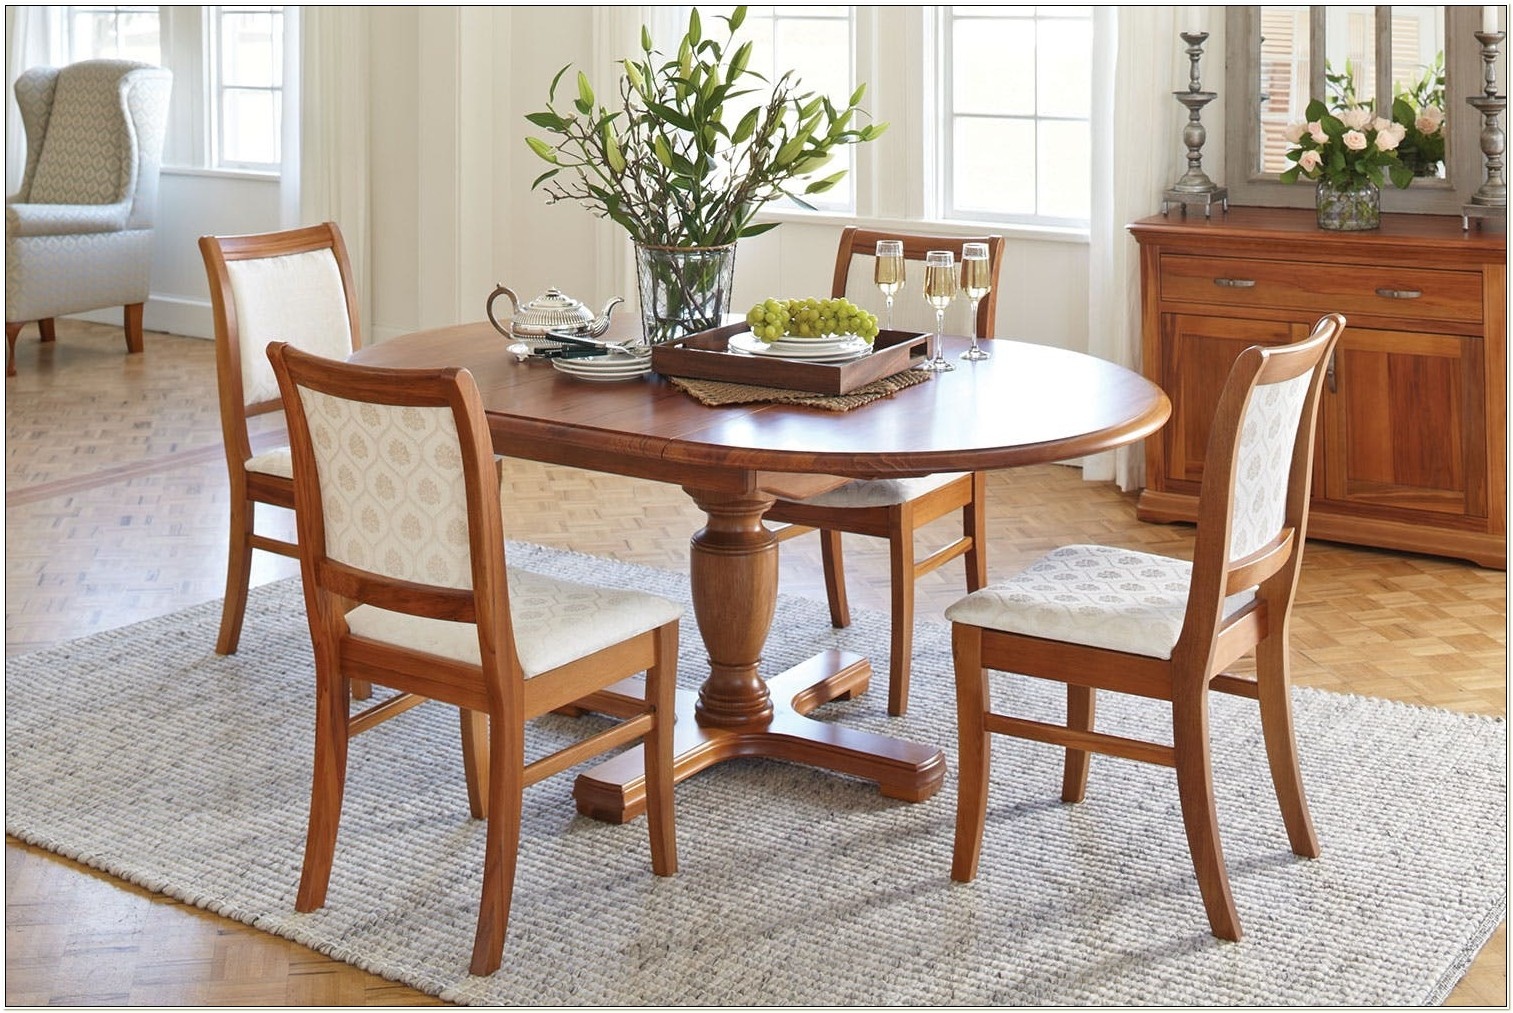 Harveys Keswick Dining Table And Chairs